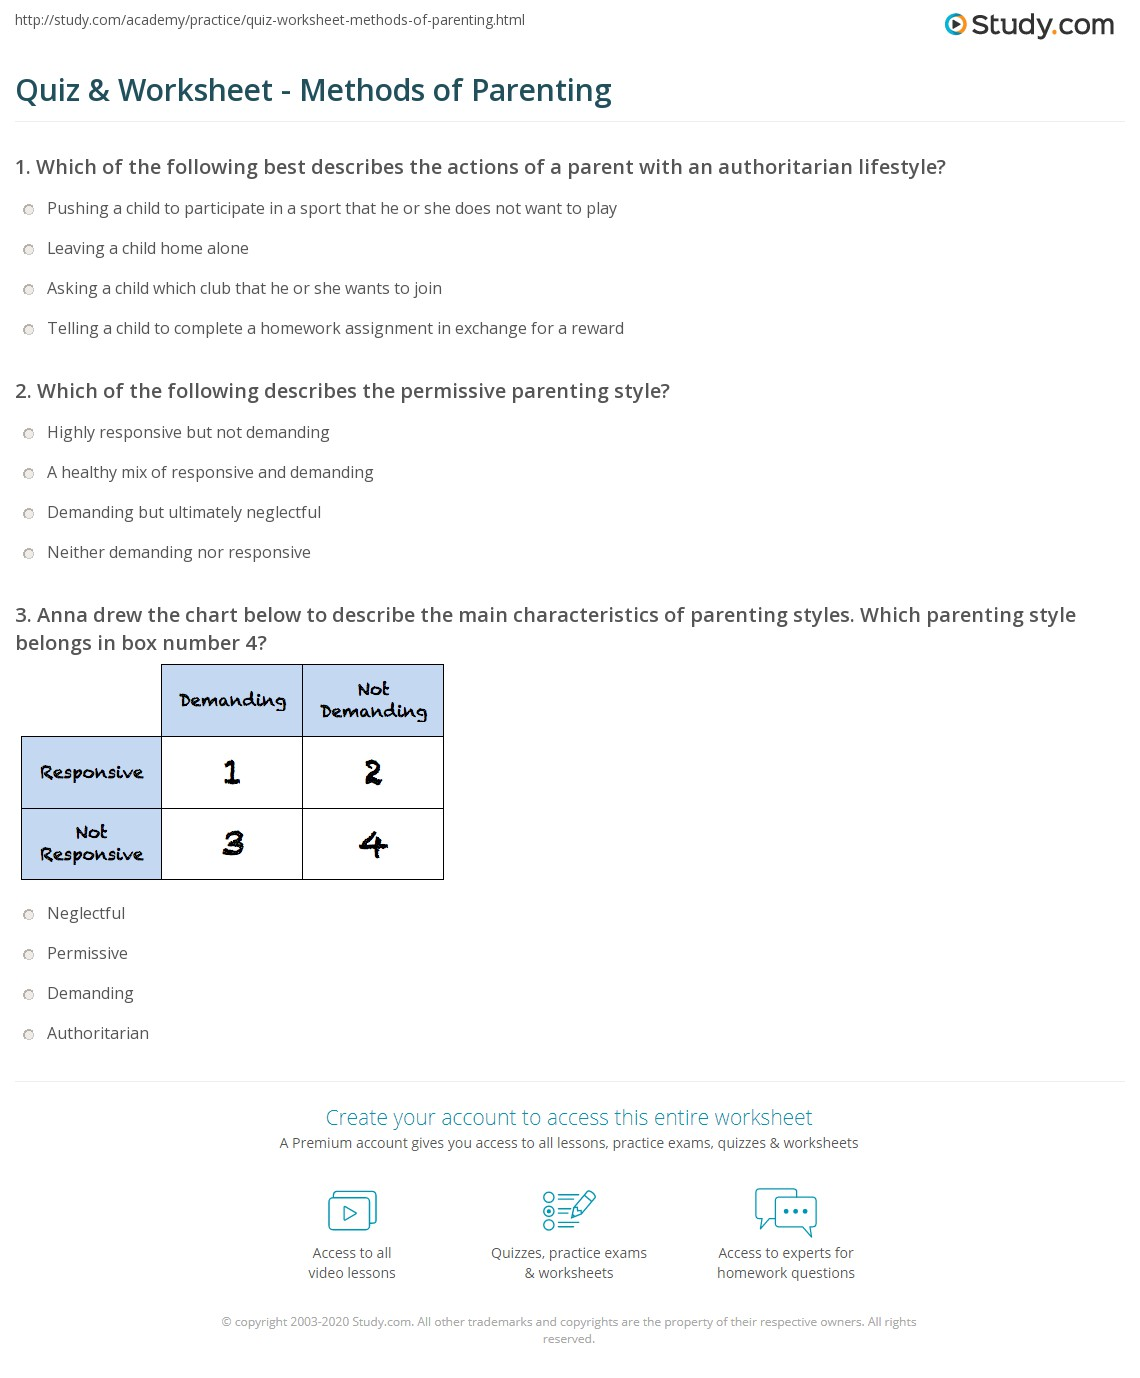 photo regarding Parenting Style Quiz Printable titled Quiz Worksheet - Strategies of Parenting